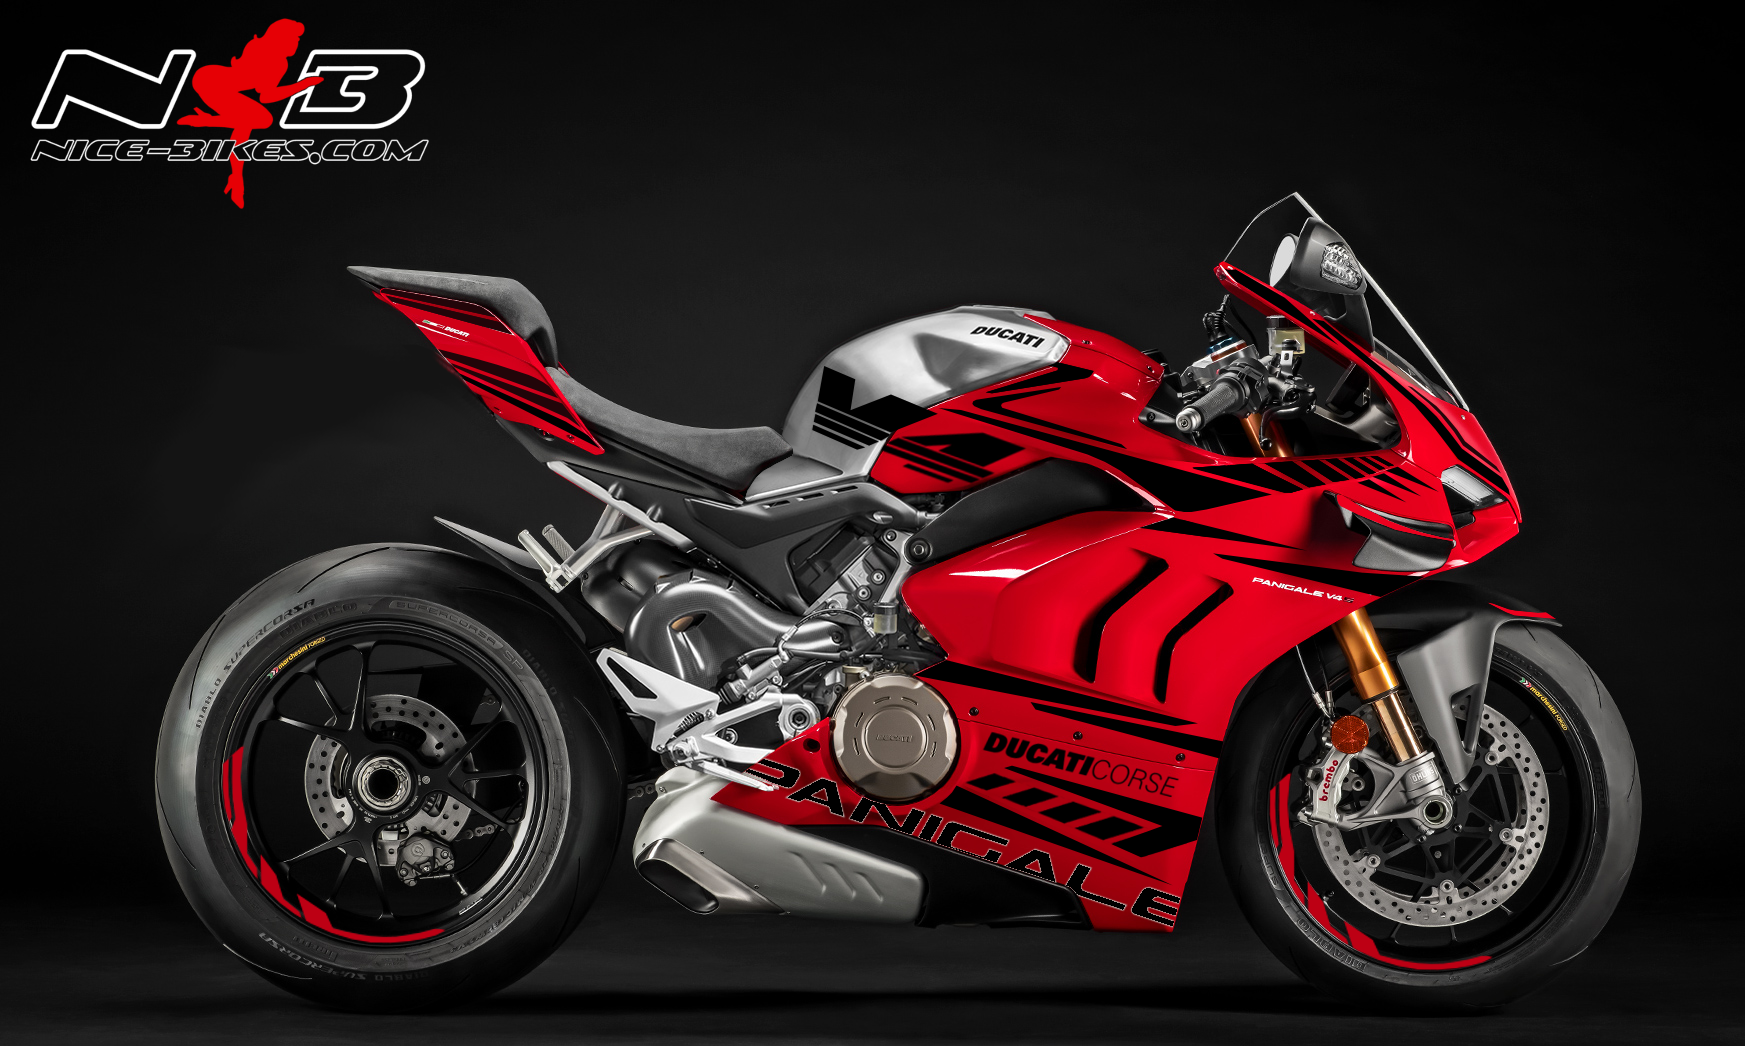 Foliendesign DUCATI Panigale V4R Bj. 2020 Magic Black